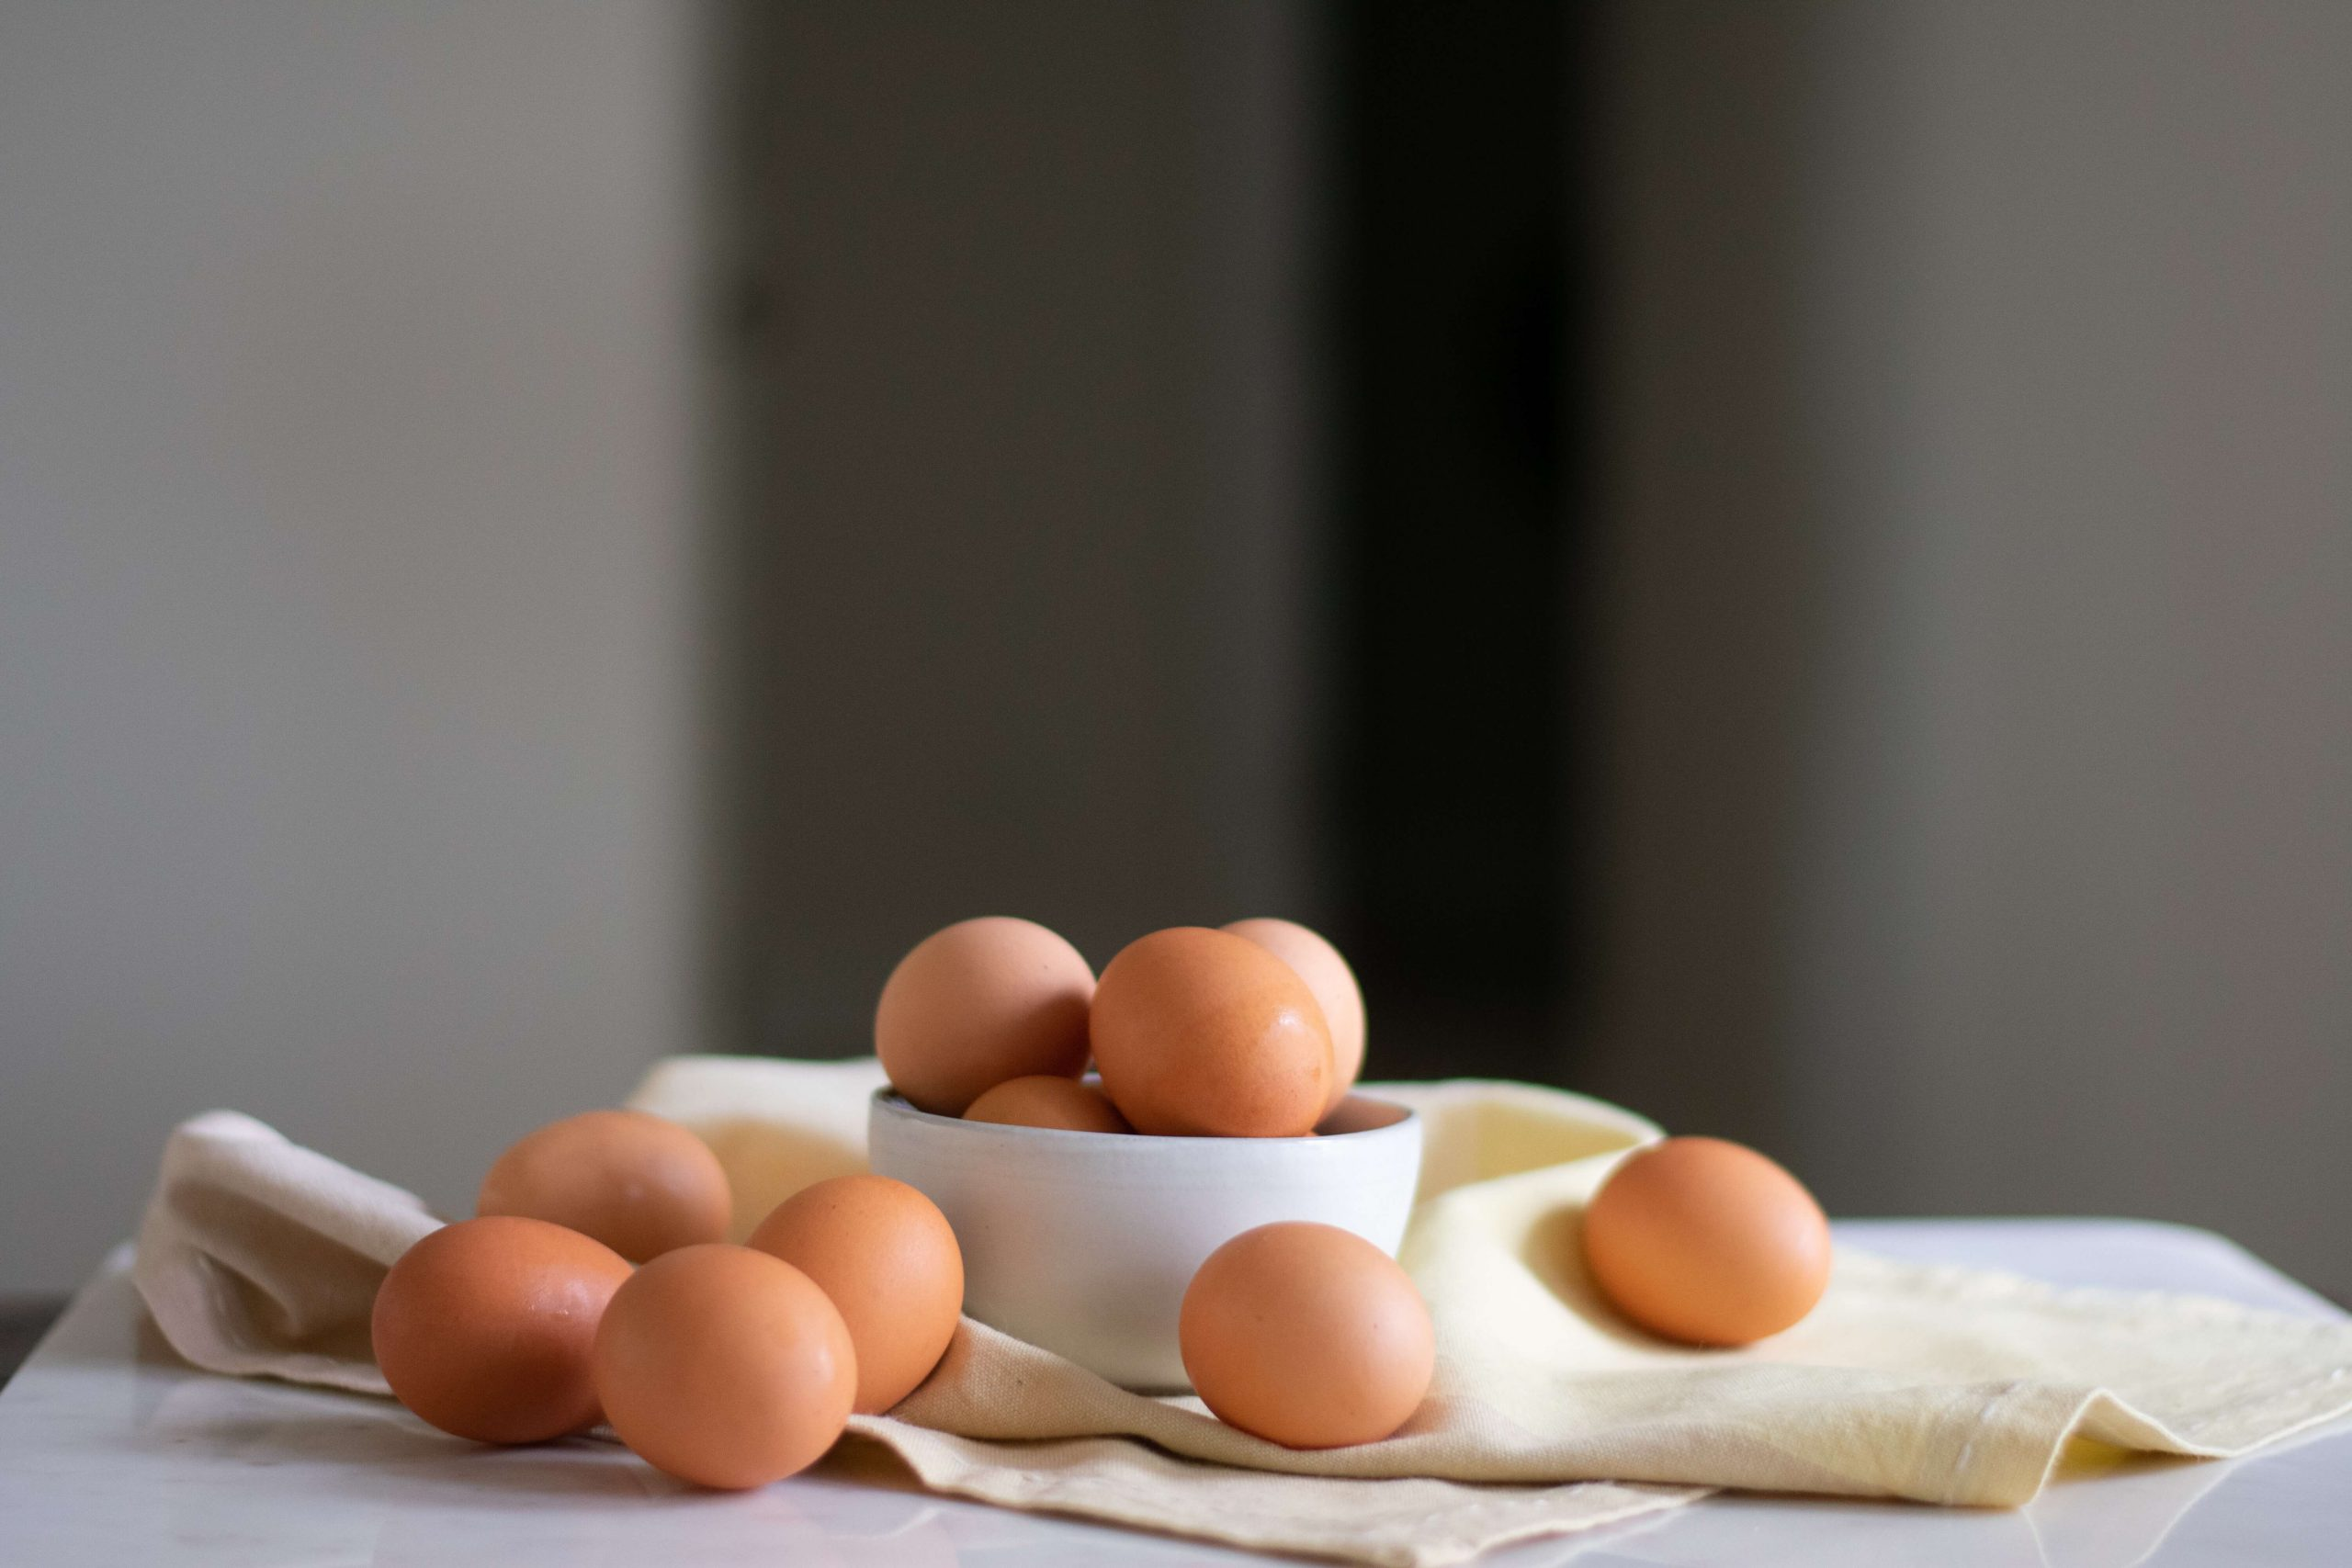 high protein eggs on a table